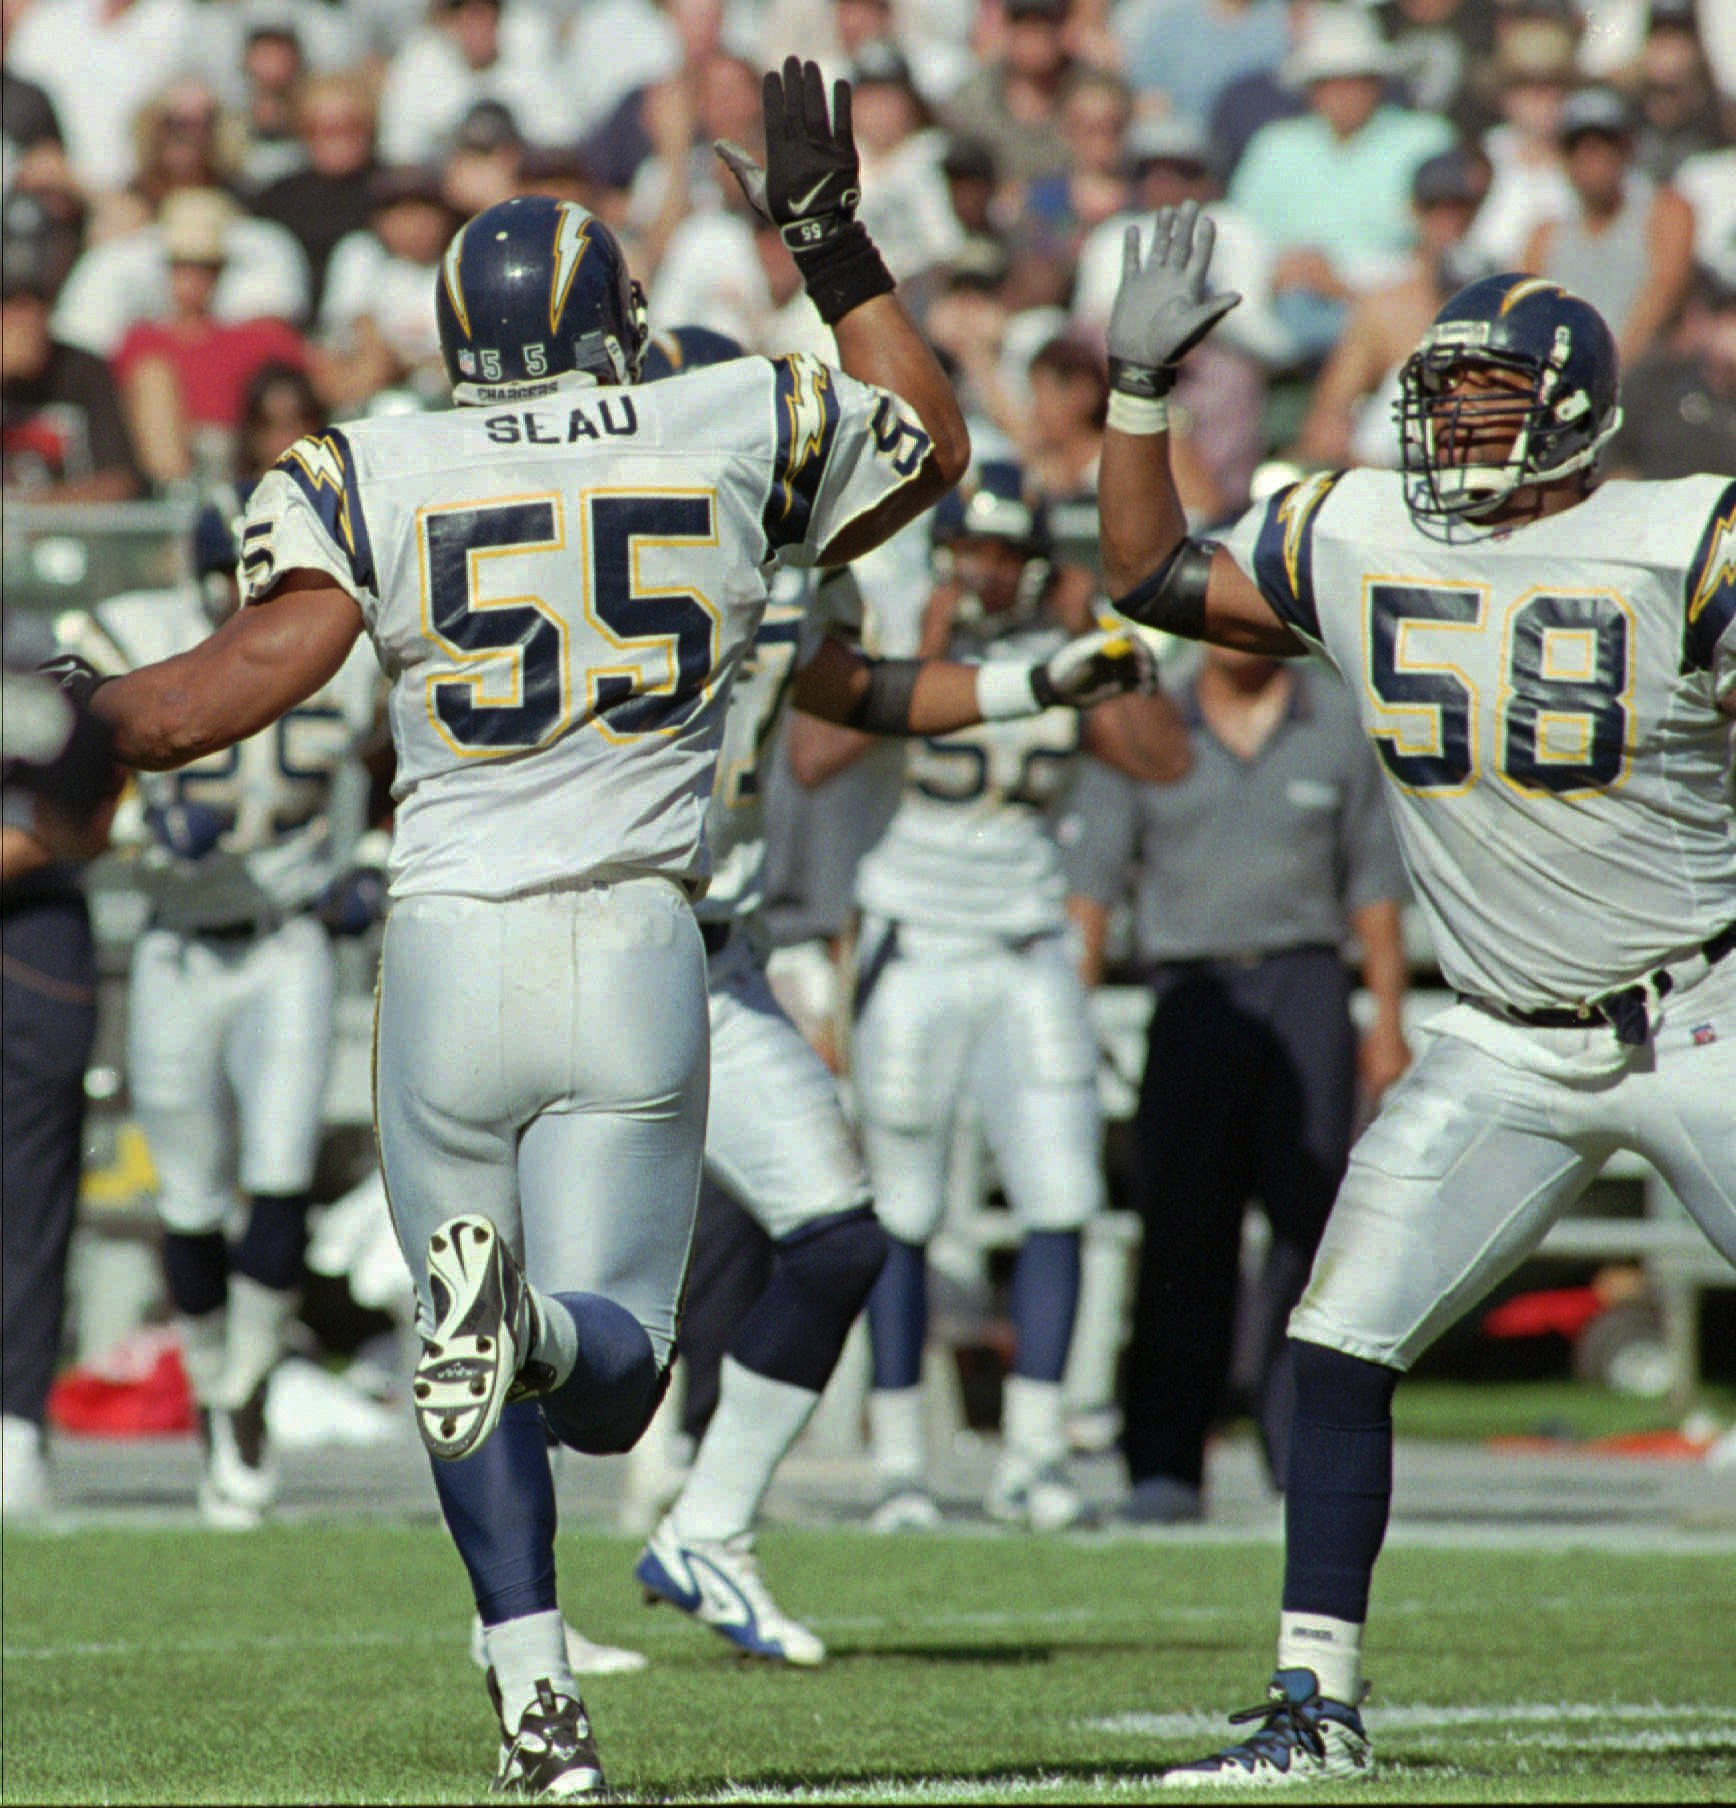 San Diego Chargers Former Playerssan Diego Chargers Forum: Former Cougar, Pro Football Player Lew Bush Dies At 42